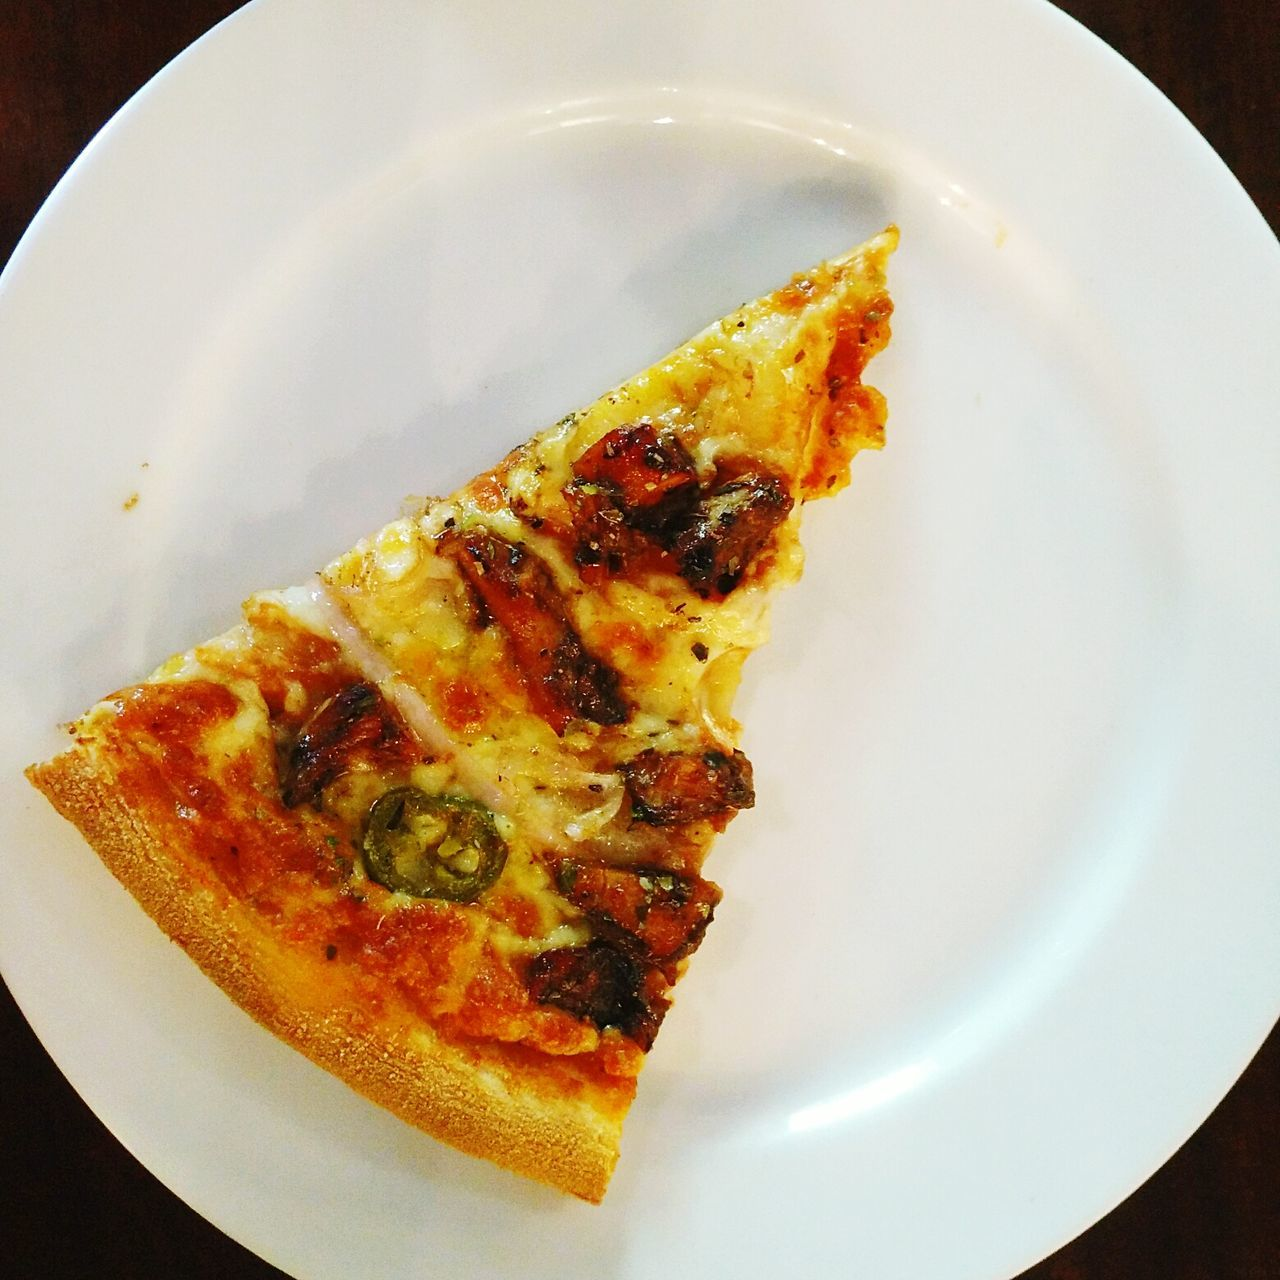 Slice of Spicy Chicken Pizza. Plate Food Ready-to-eat Freshness Foodie Slice Of Pizza Pizza Pizzalover Pizza Time Pizza Lover Pizza Slice SLICE Food Photography Spicy Chicken Pizza Cremeux Goa Travel Overhead View Simplistic Minimalism Simple Photography Isolated Goa Tourism Brunch Pizza Porn